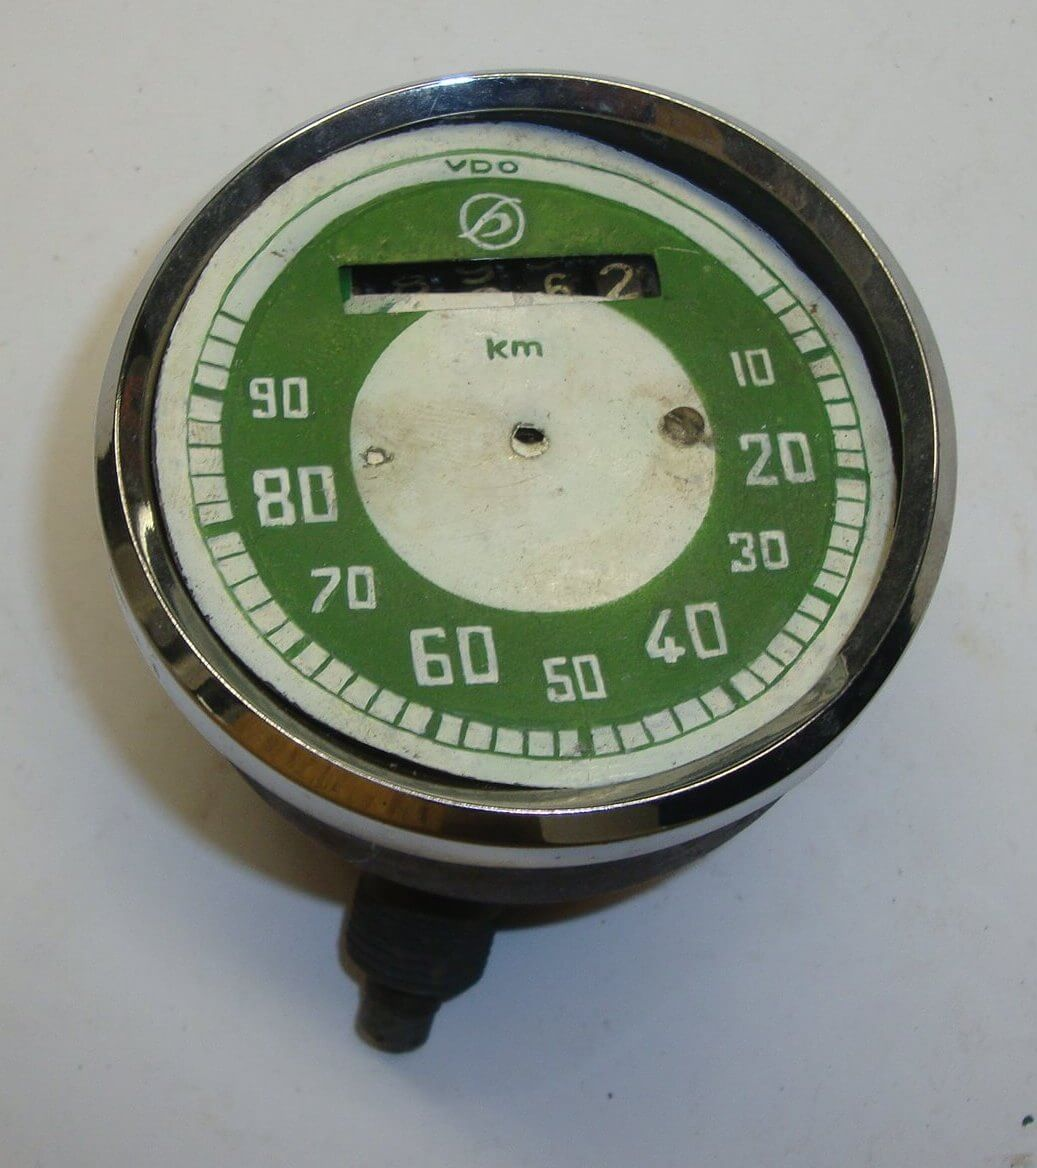 Speedometer, VDO, to be repaired, Hoffmann Vespa 125 HA - HB